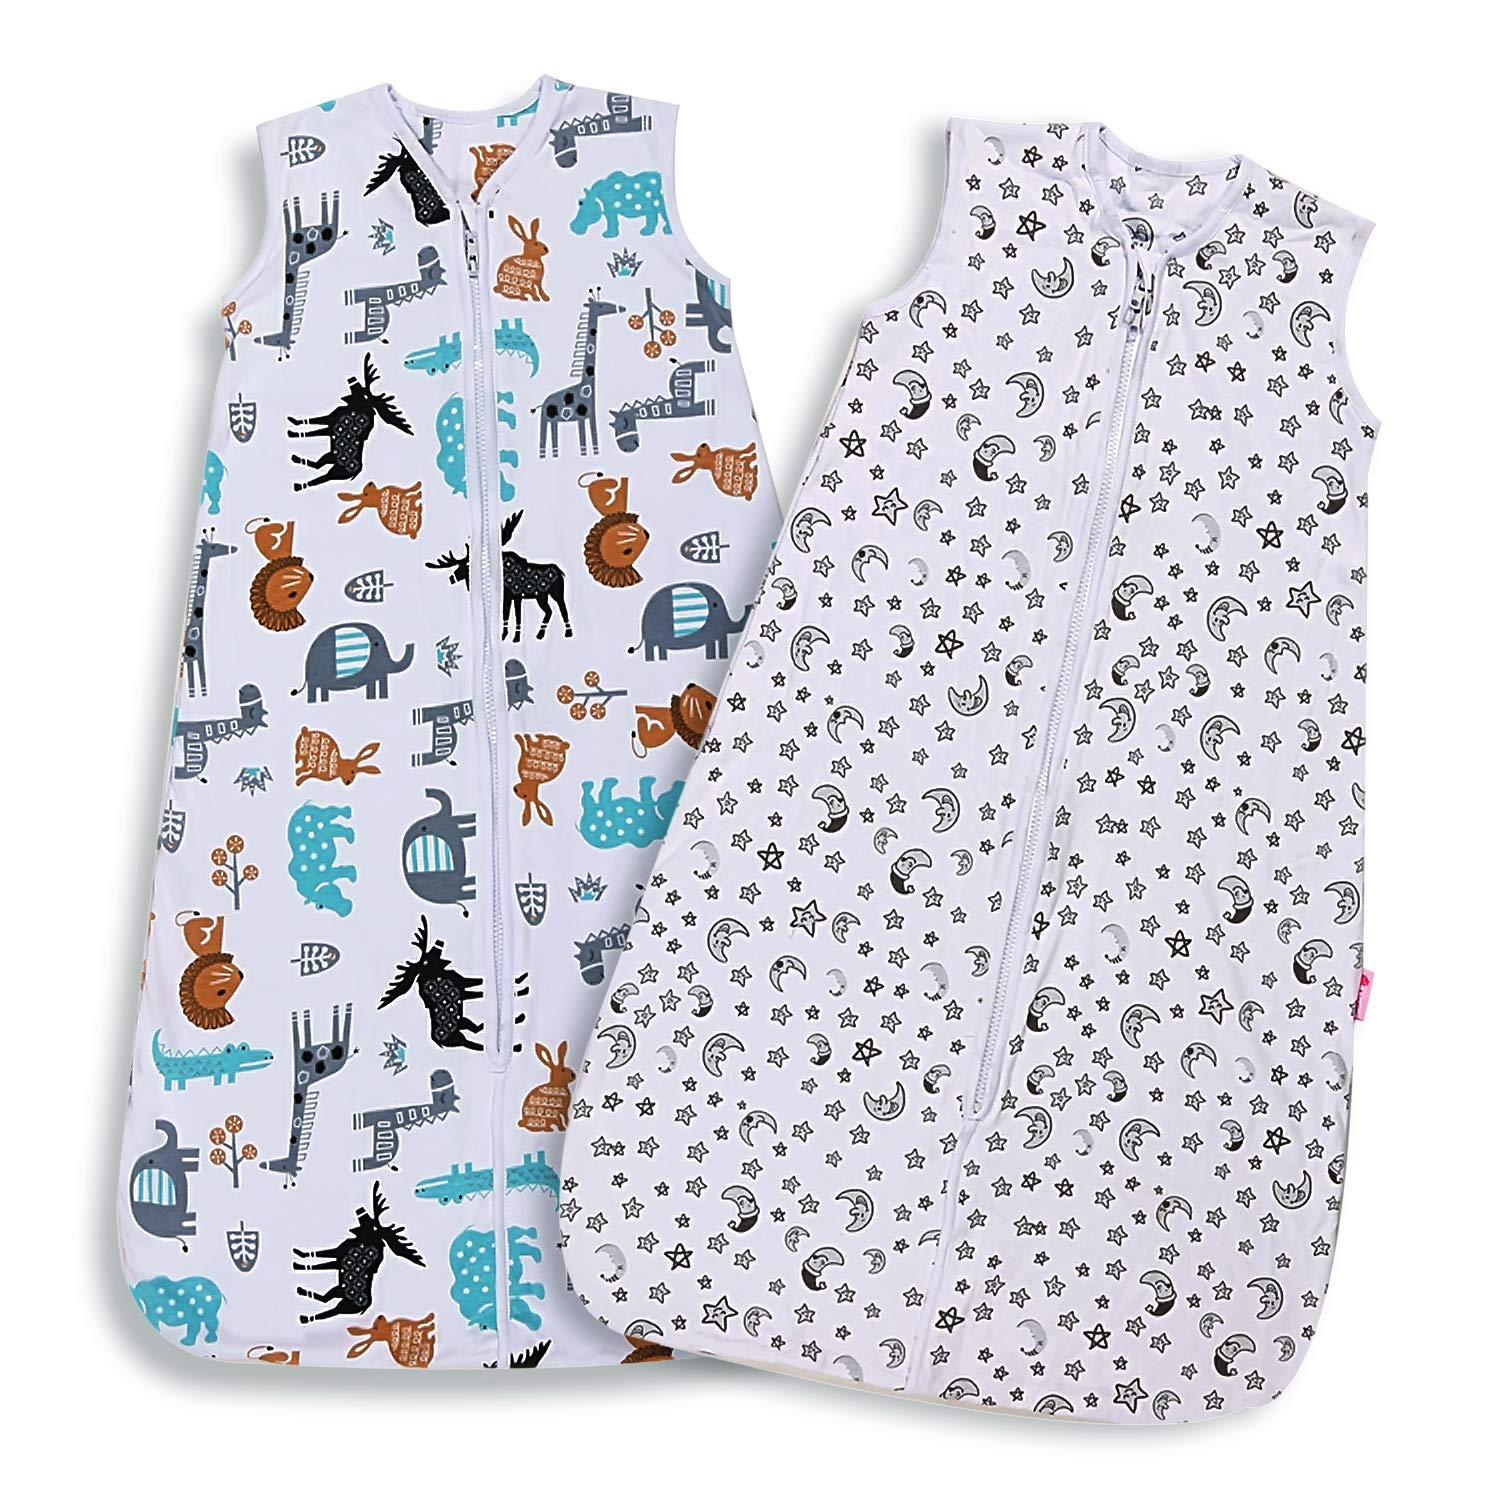 Lictin Baby Sleeping Bag - Baby Wearable Blanket Sleeping Sack Baby 2pcs Baby Swaddle Sack Blanket Sack with Adjustable Length 90-110cm for Infant Toddler 18 to 36 Month (90-110cm) by Lictin